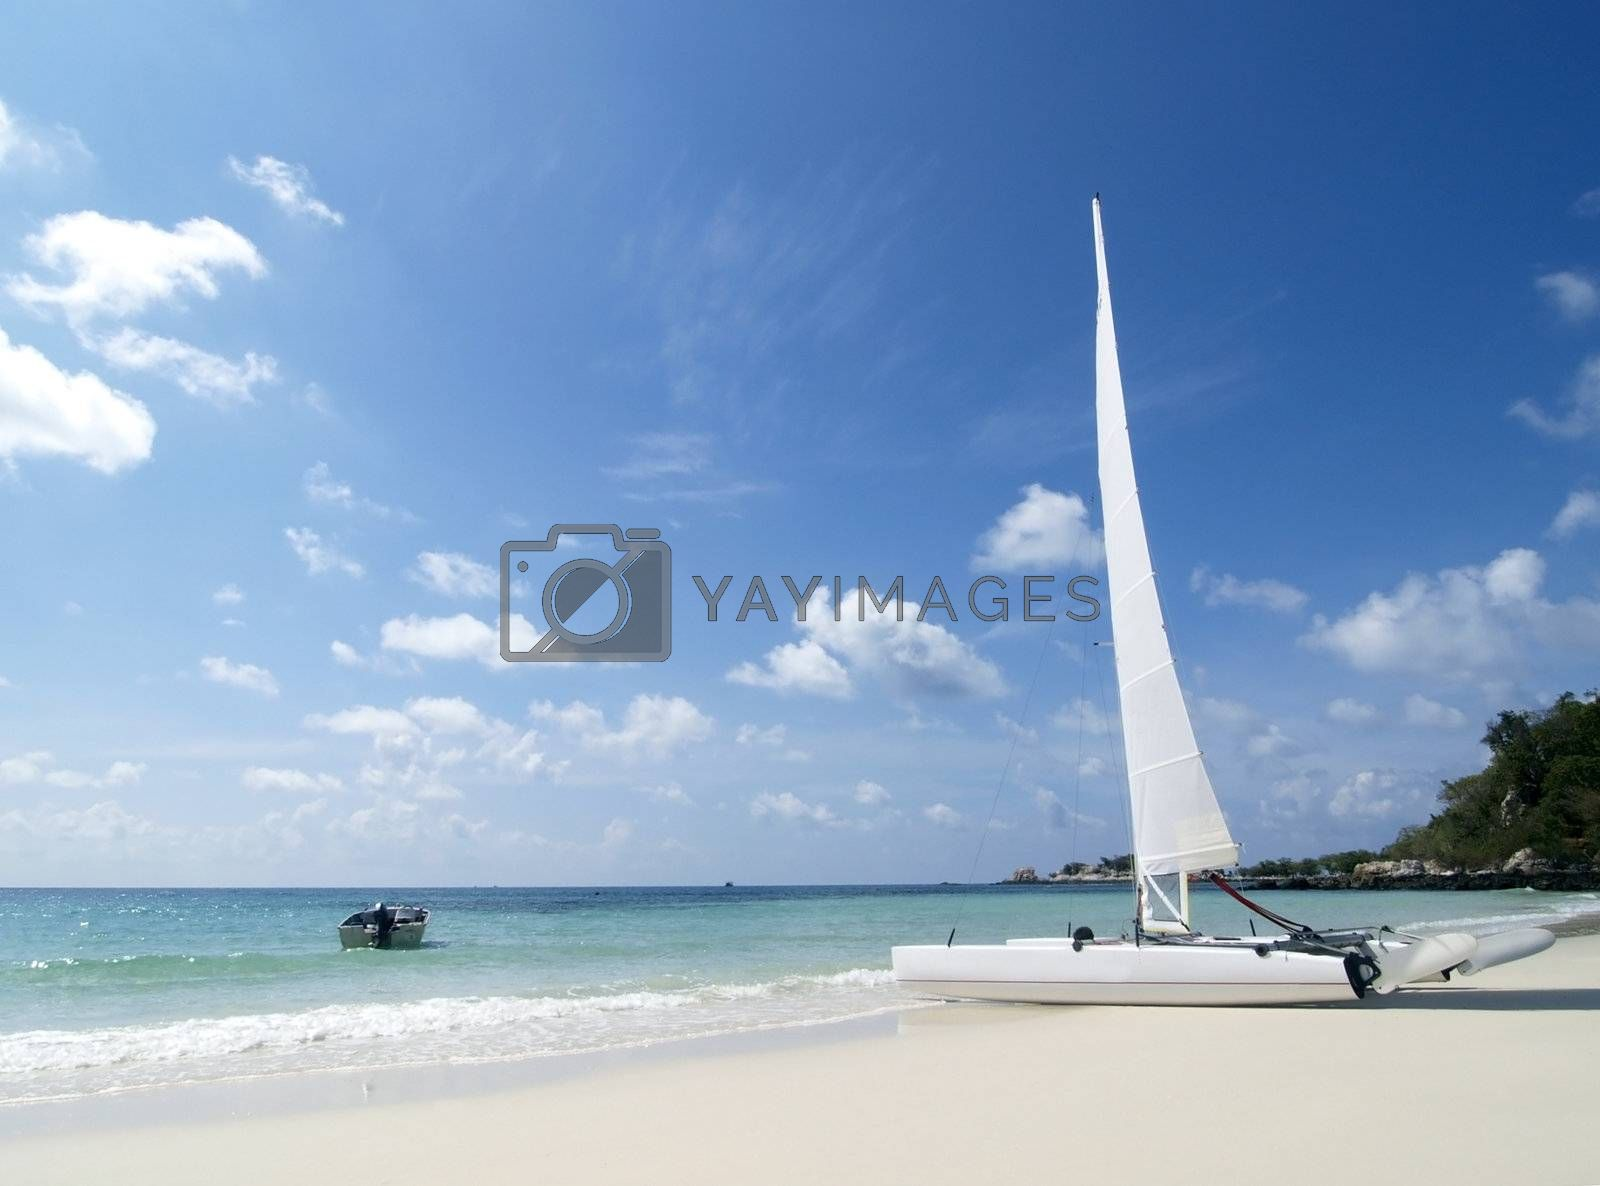 Catamaran on the beach by epixx